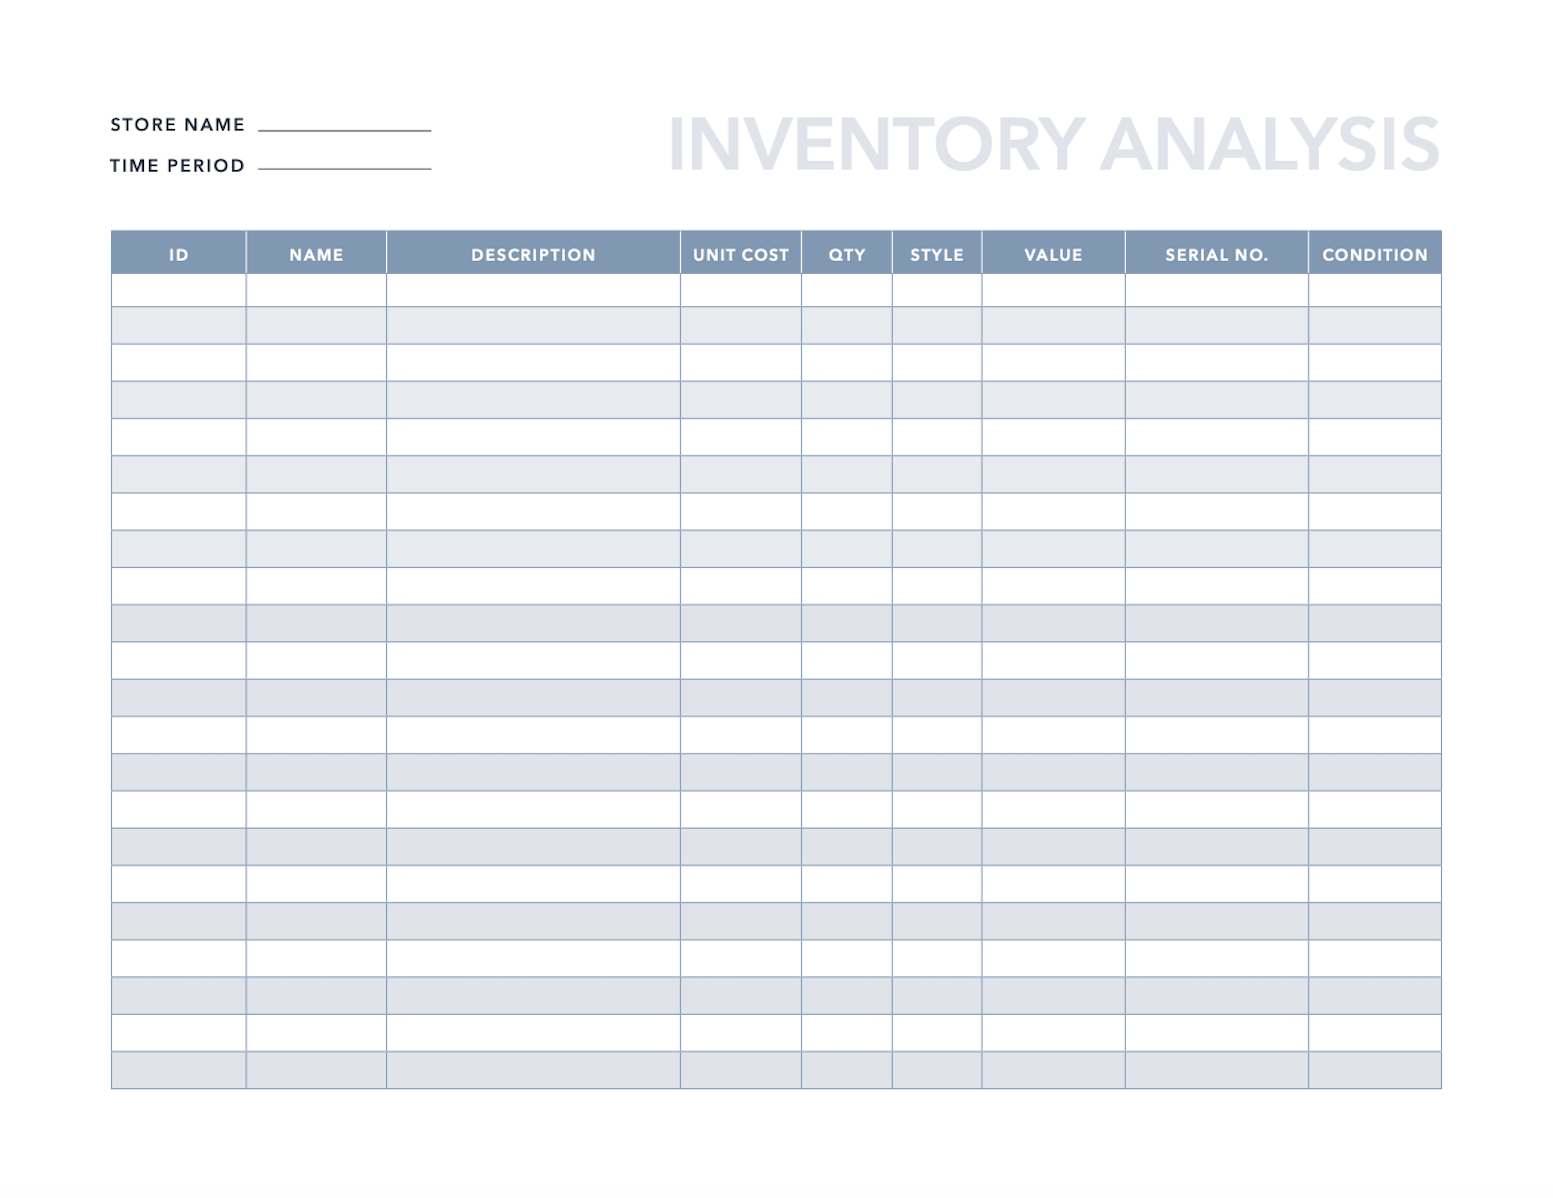 Full Size of Spreadsheet Download Boat Inventory Sample Product Clothing